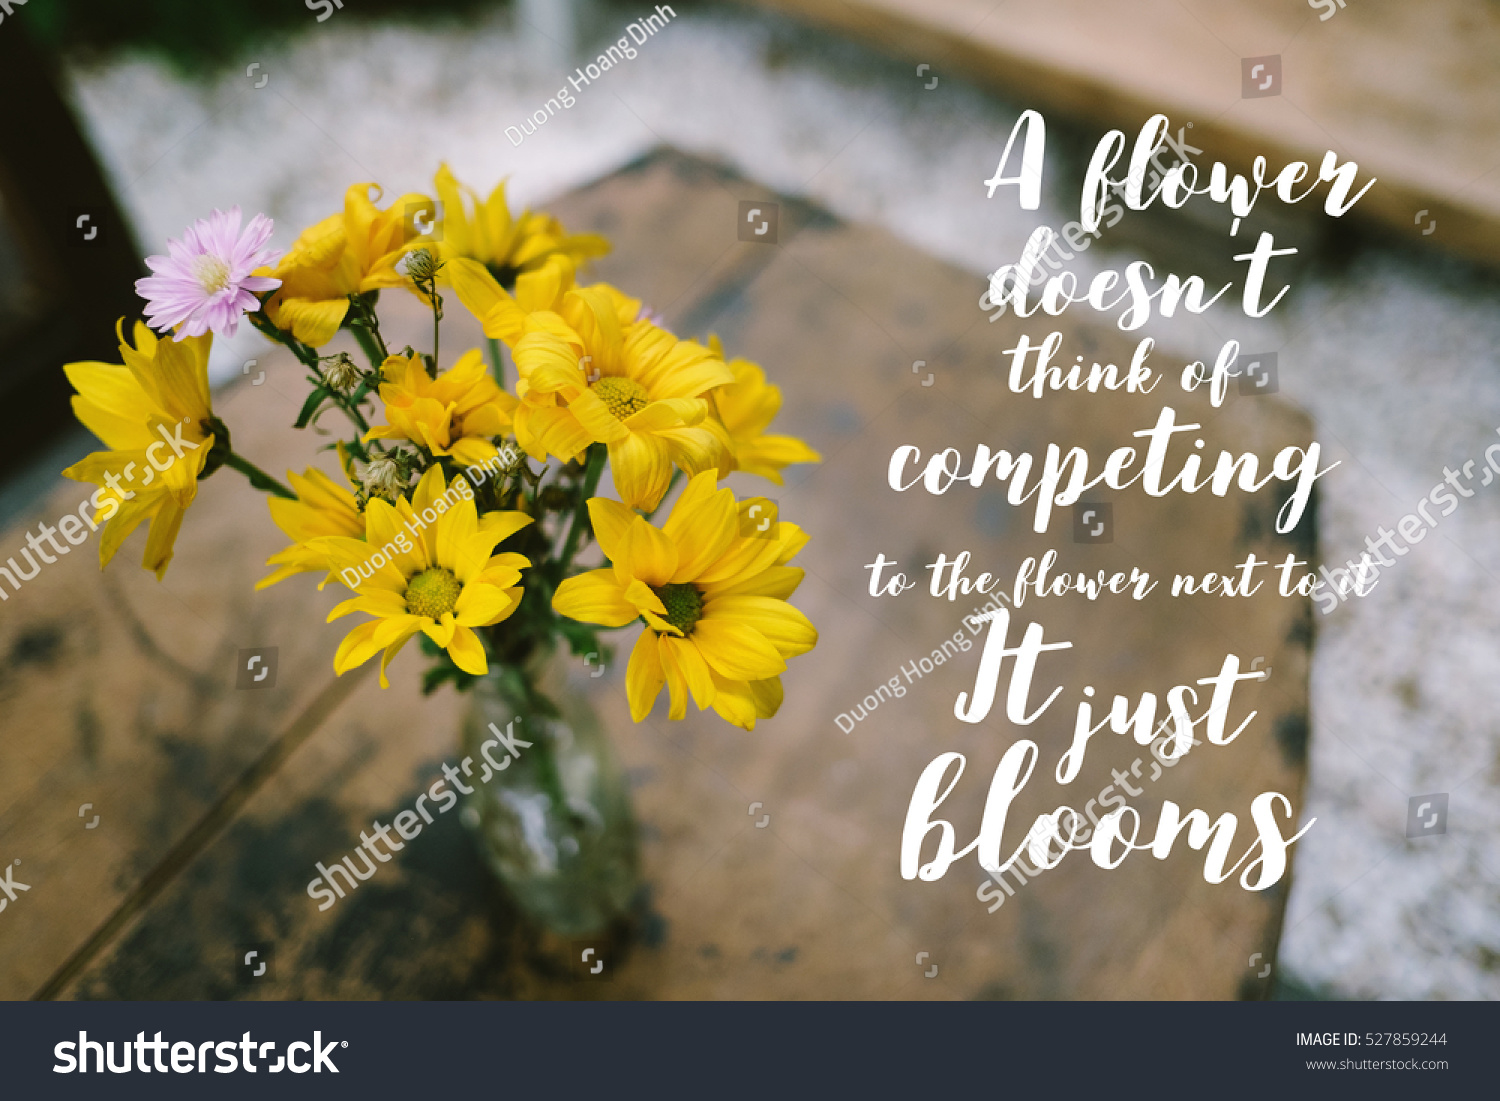 Inspirational Quote On Blurred Yellow Flowers Stock Photo Edit Now 527859244